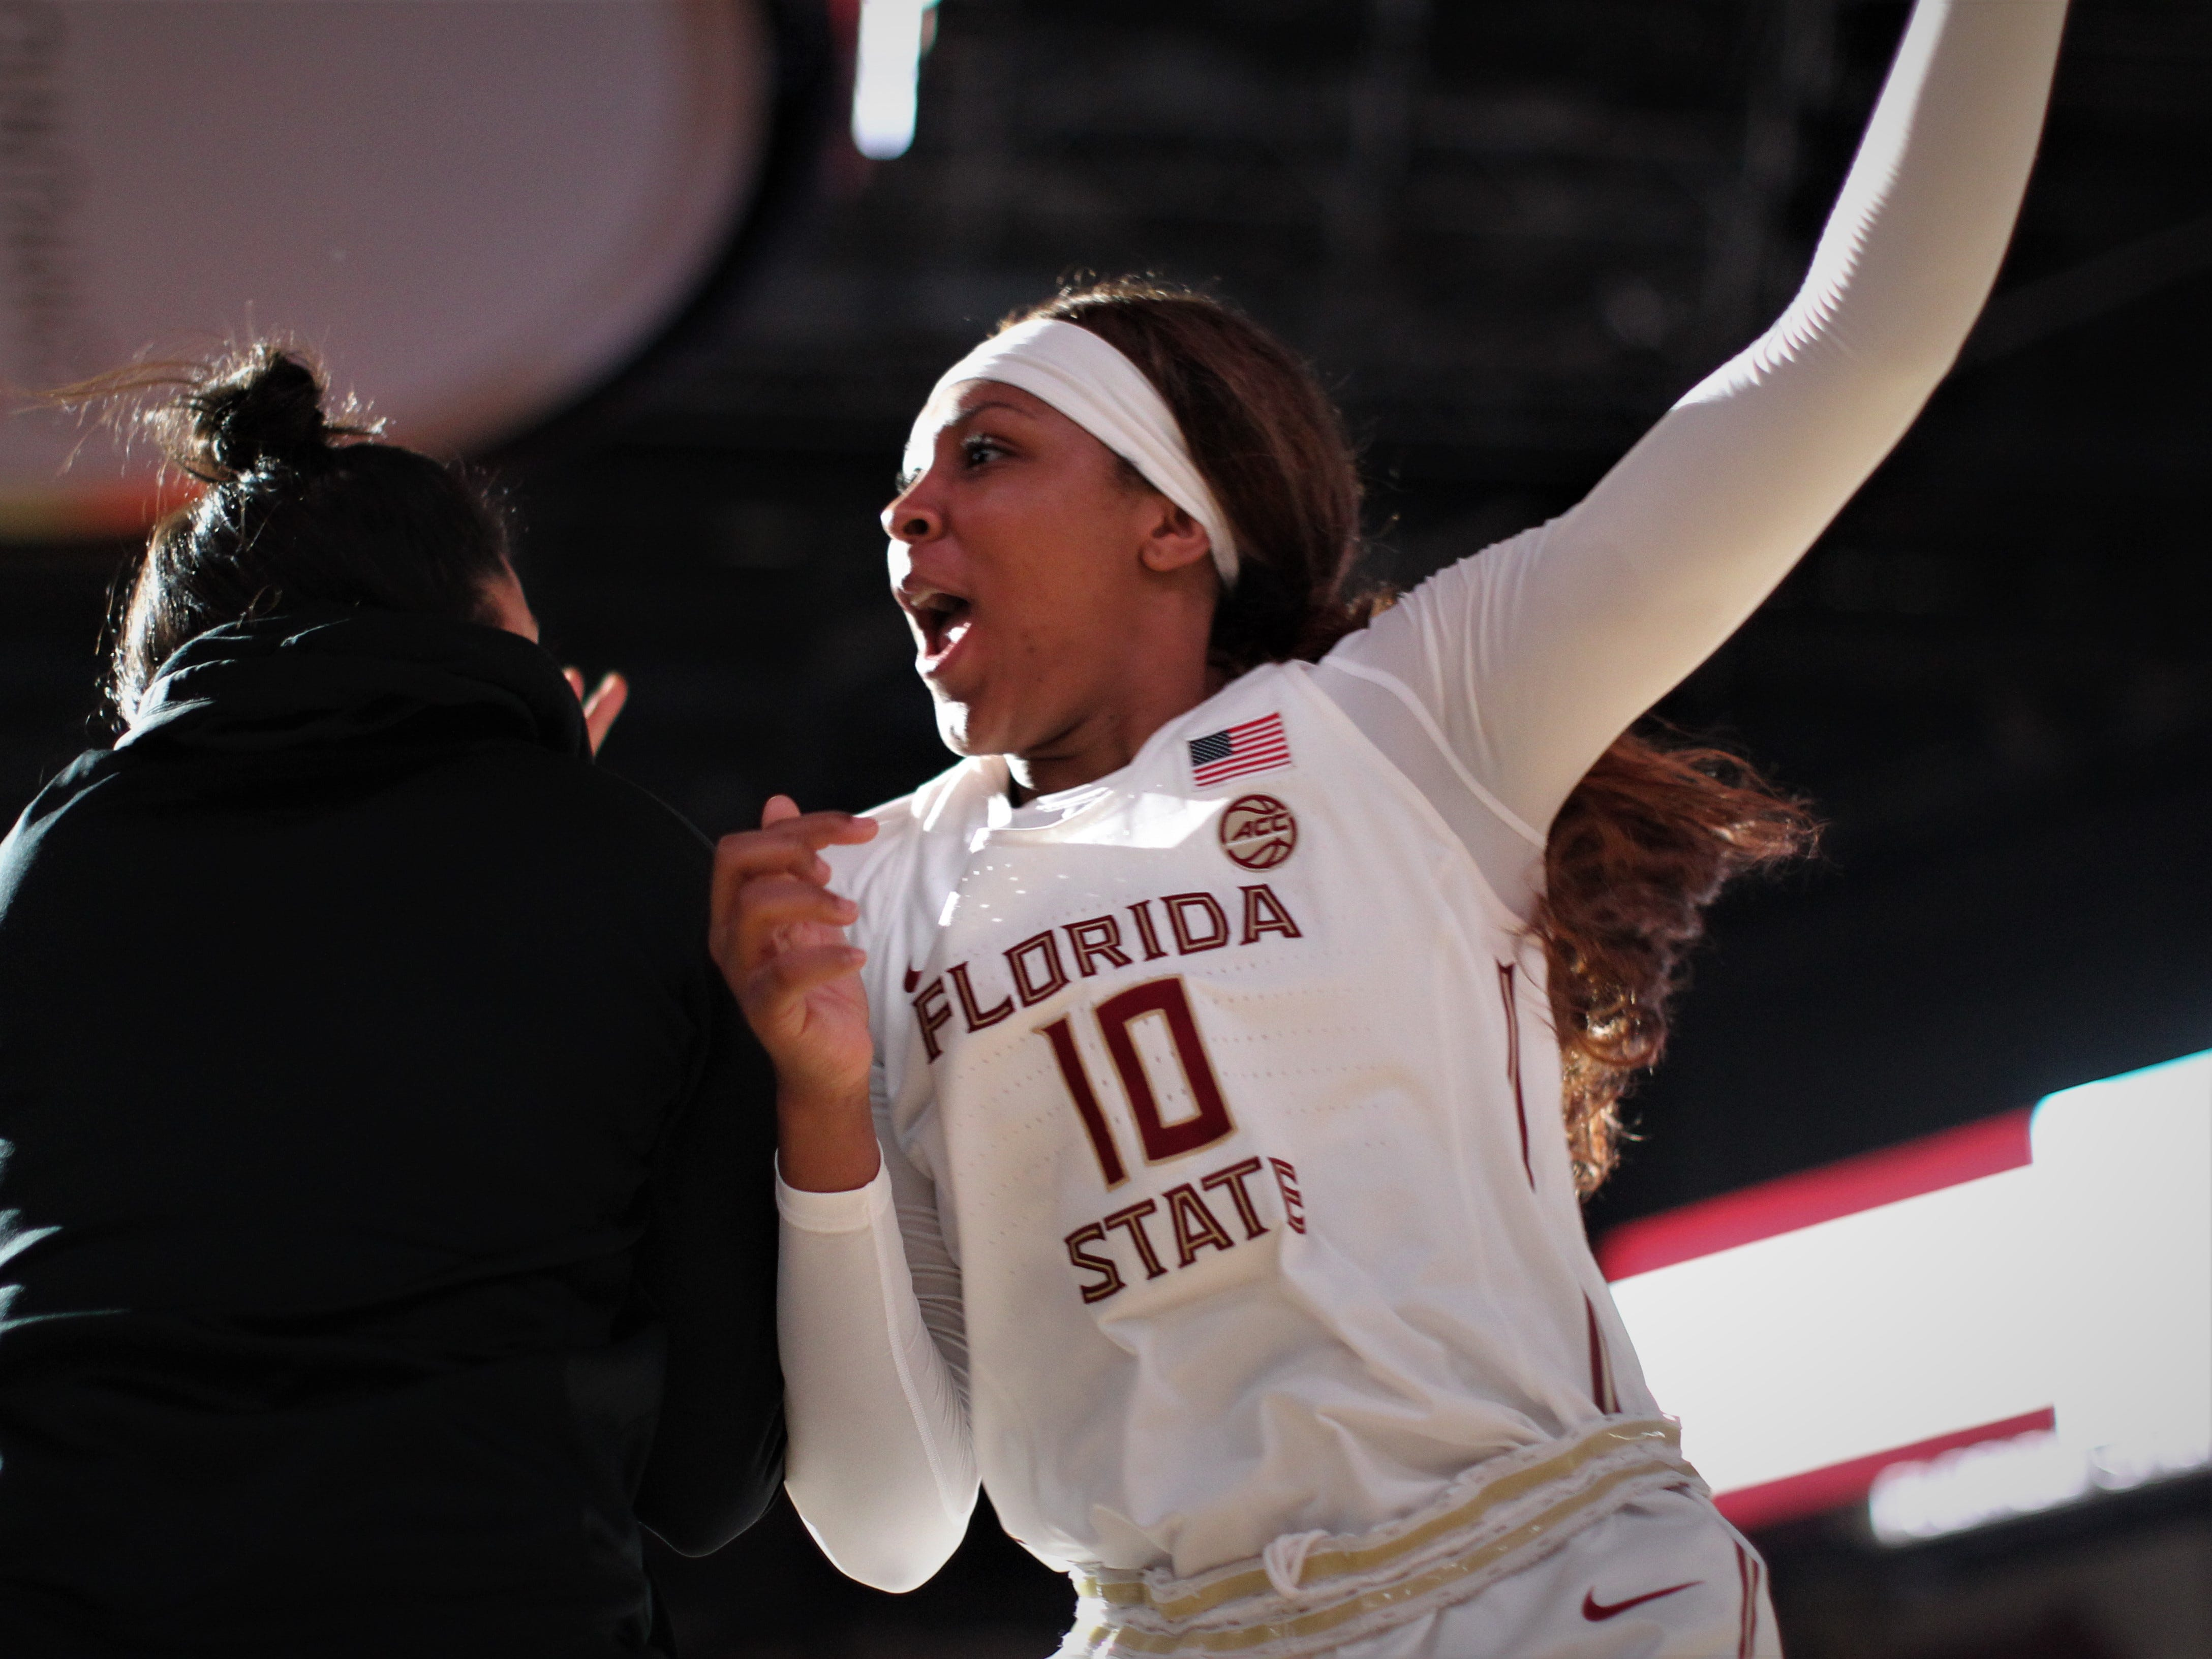 Florida State freshman Kourtney Weber is introduced as a starter before the Seminoles' game against Florida at the Tucker Civic Center on Nov. 11, 2018.